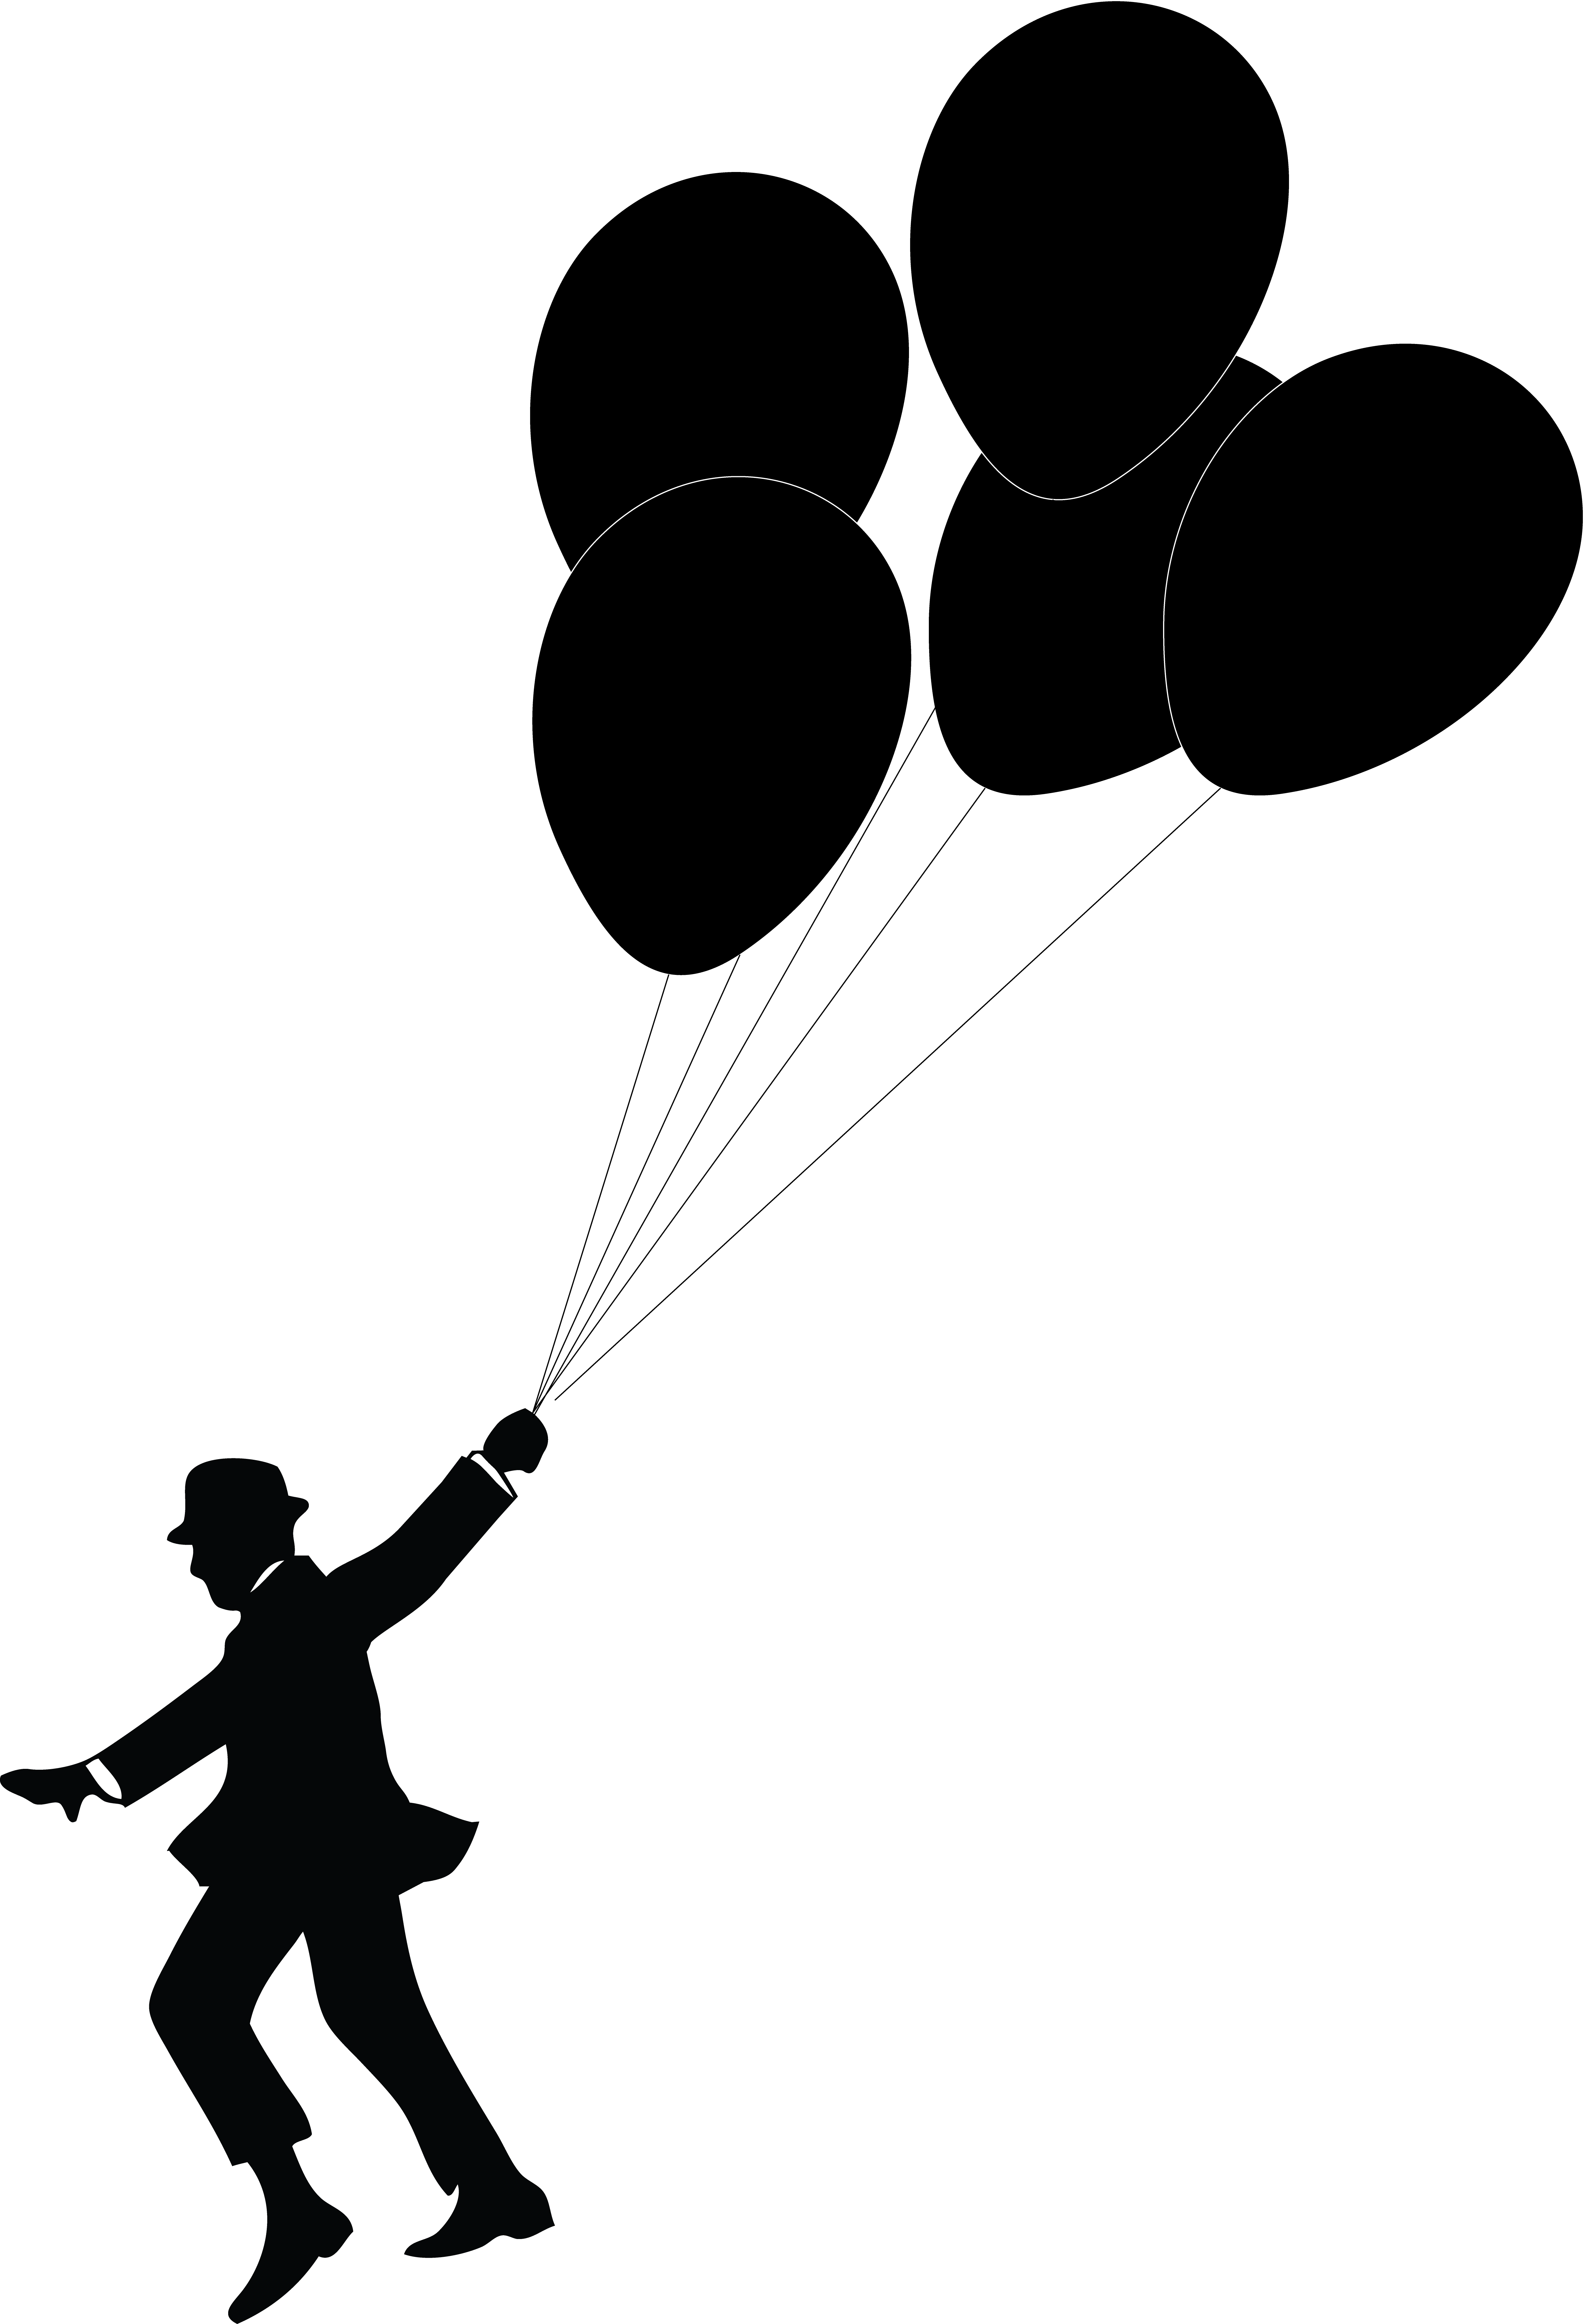 Dog balloon clipart clipart library Silhouette Balloon at GetDrawings.com | Free for personal use ... clipart library